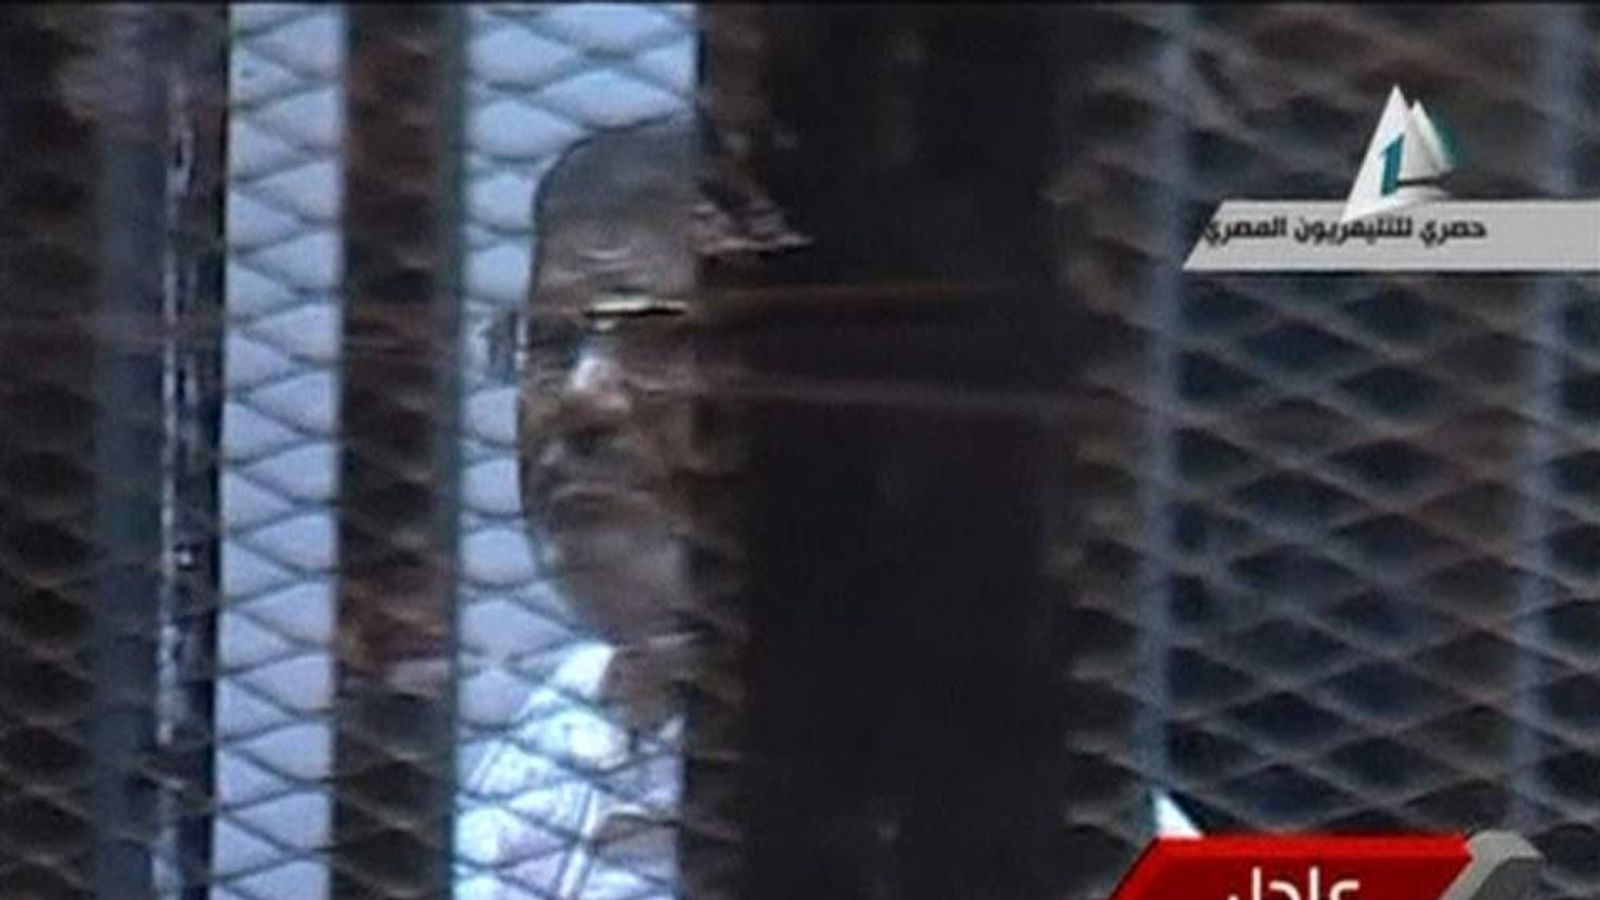 Mohamed Morsi in court for jailbreaking case